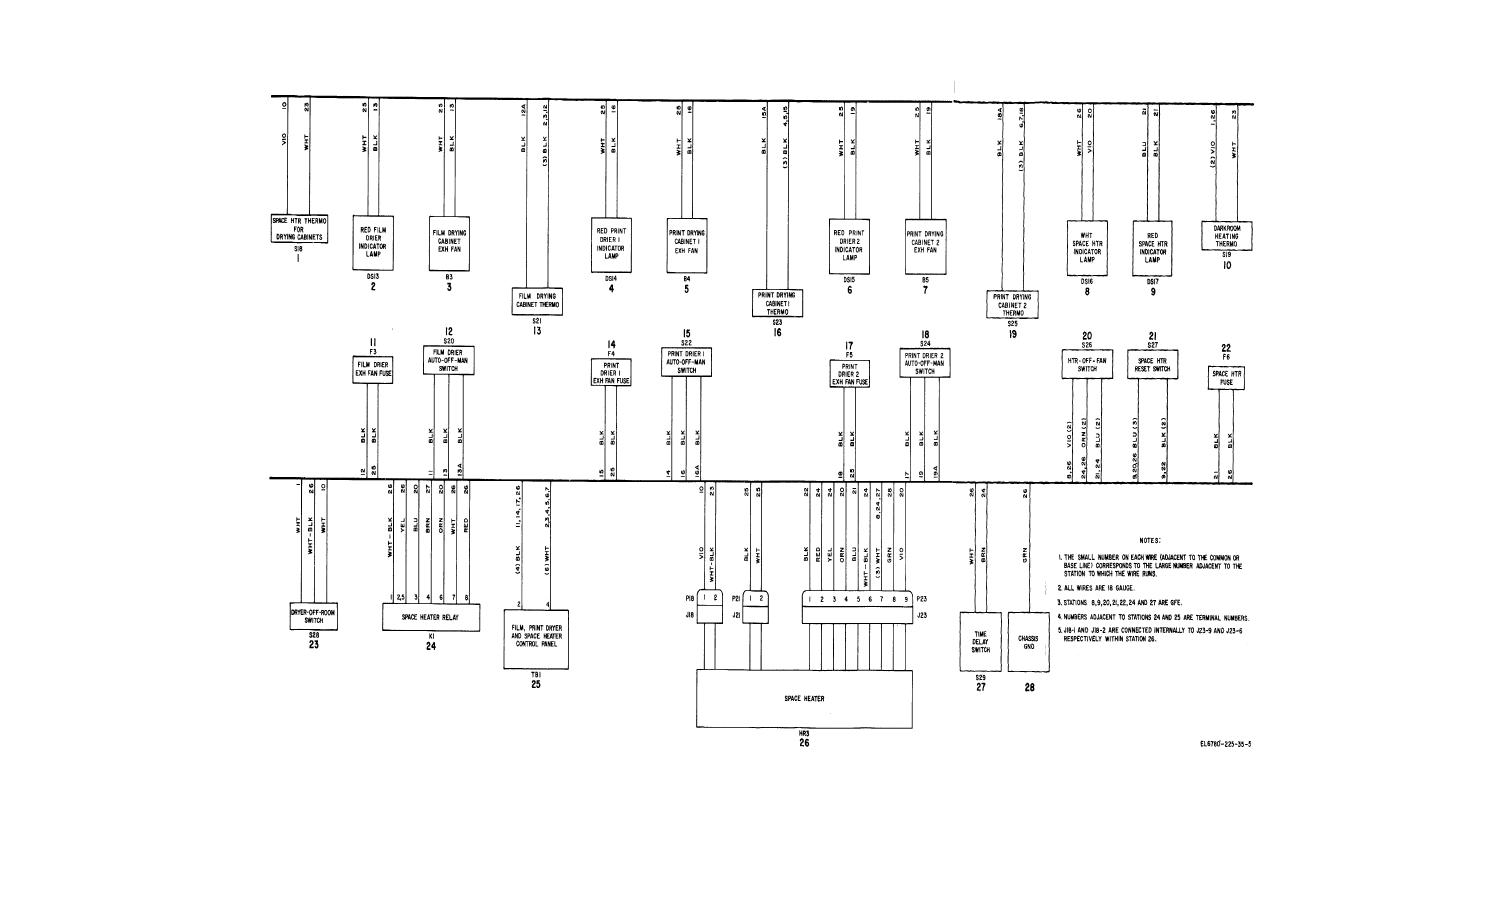 TM 11 6780 225 350135im figure 5 2 film and print drier and space heater control panel panel heater wiring diagram at reclaimingppi.co